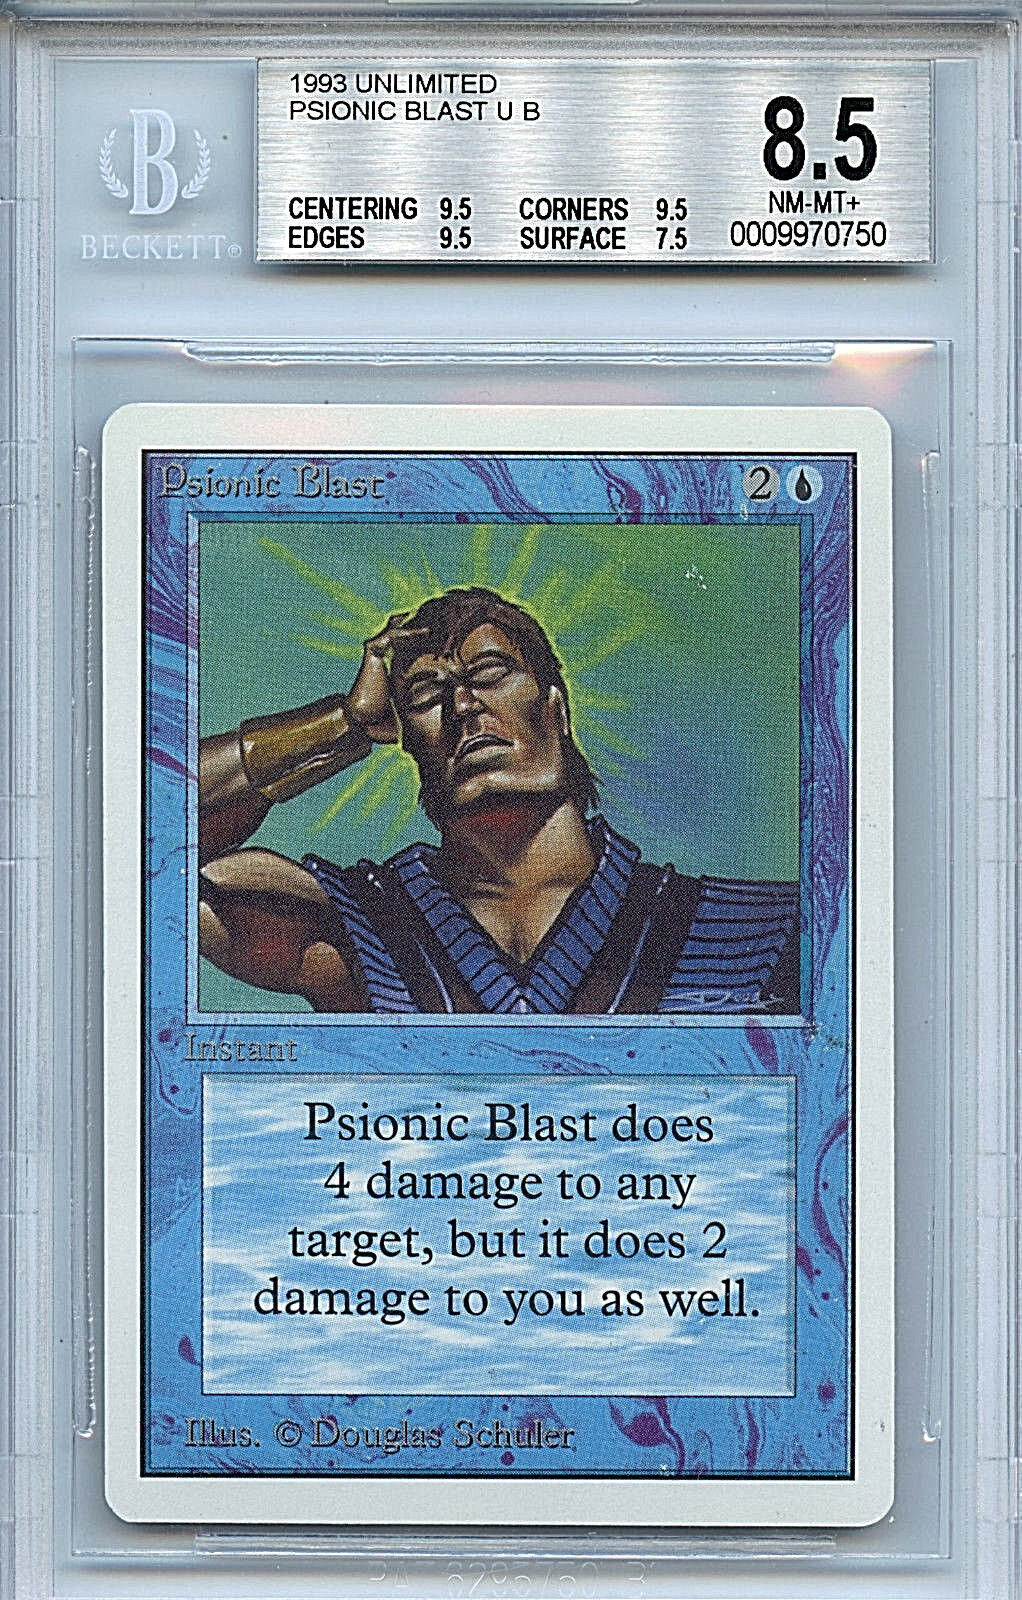 Mtg unbegrenzte psionische strahl bgs 8,5 nm   t + card magic the gathering wotc 0750